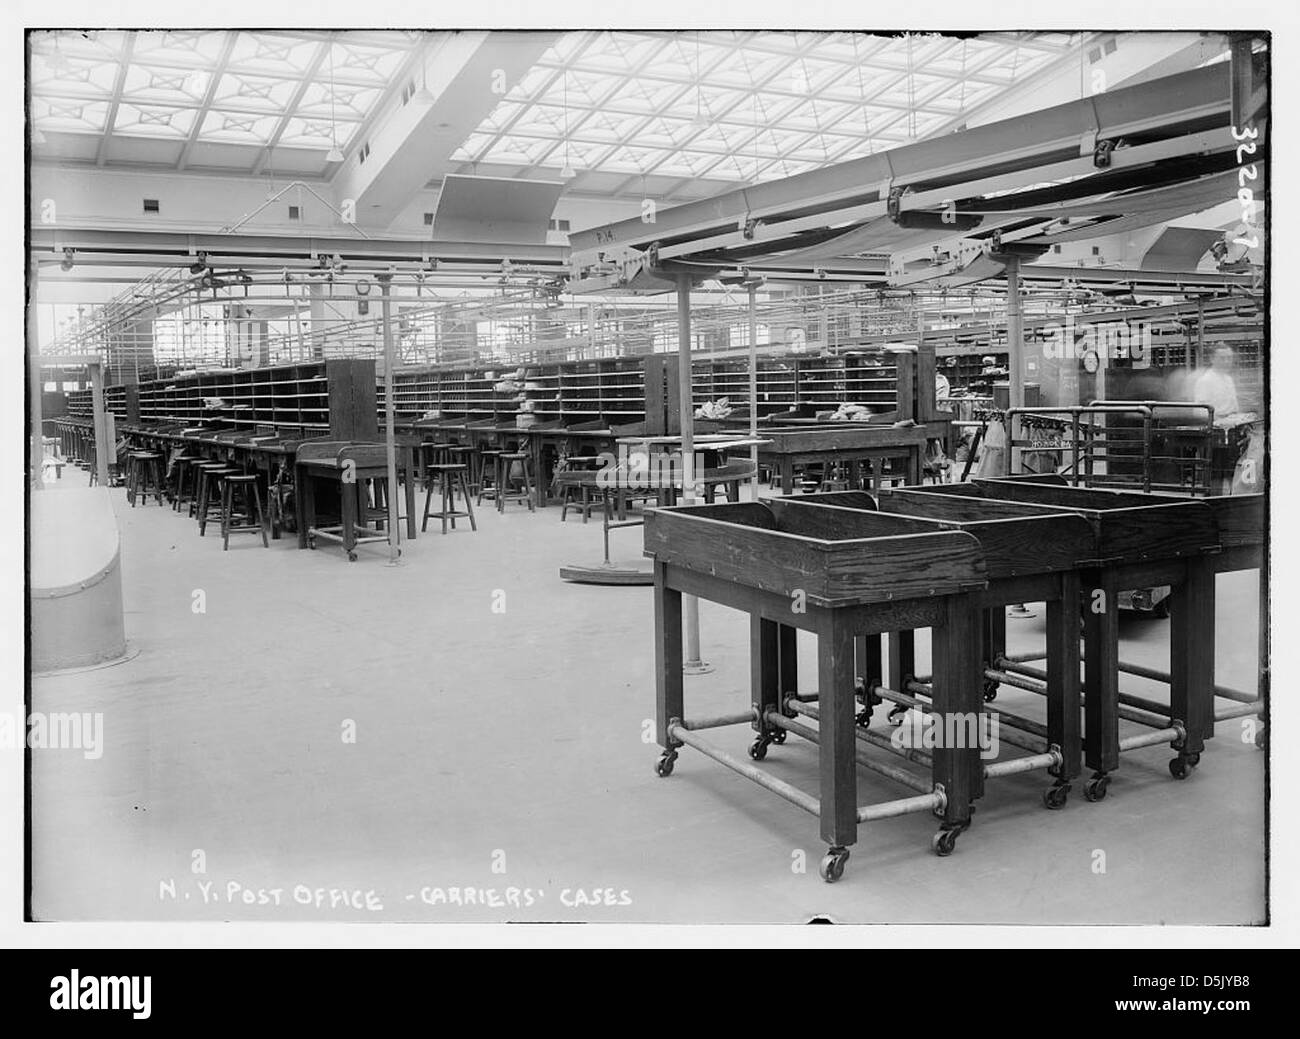 N.Y. Post Office -- Carriers' Cases (LOC) - Stock Image